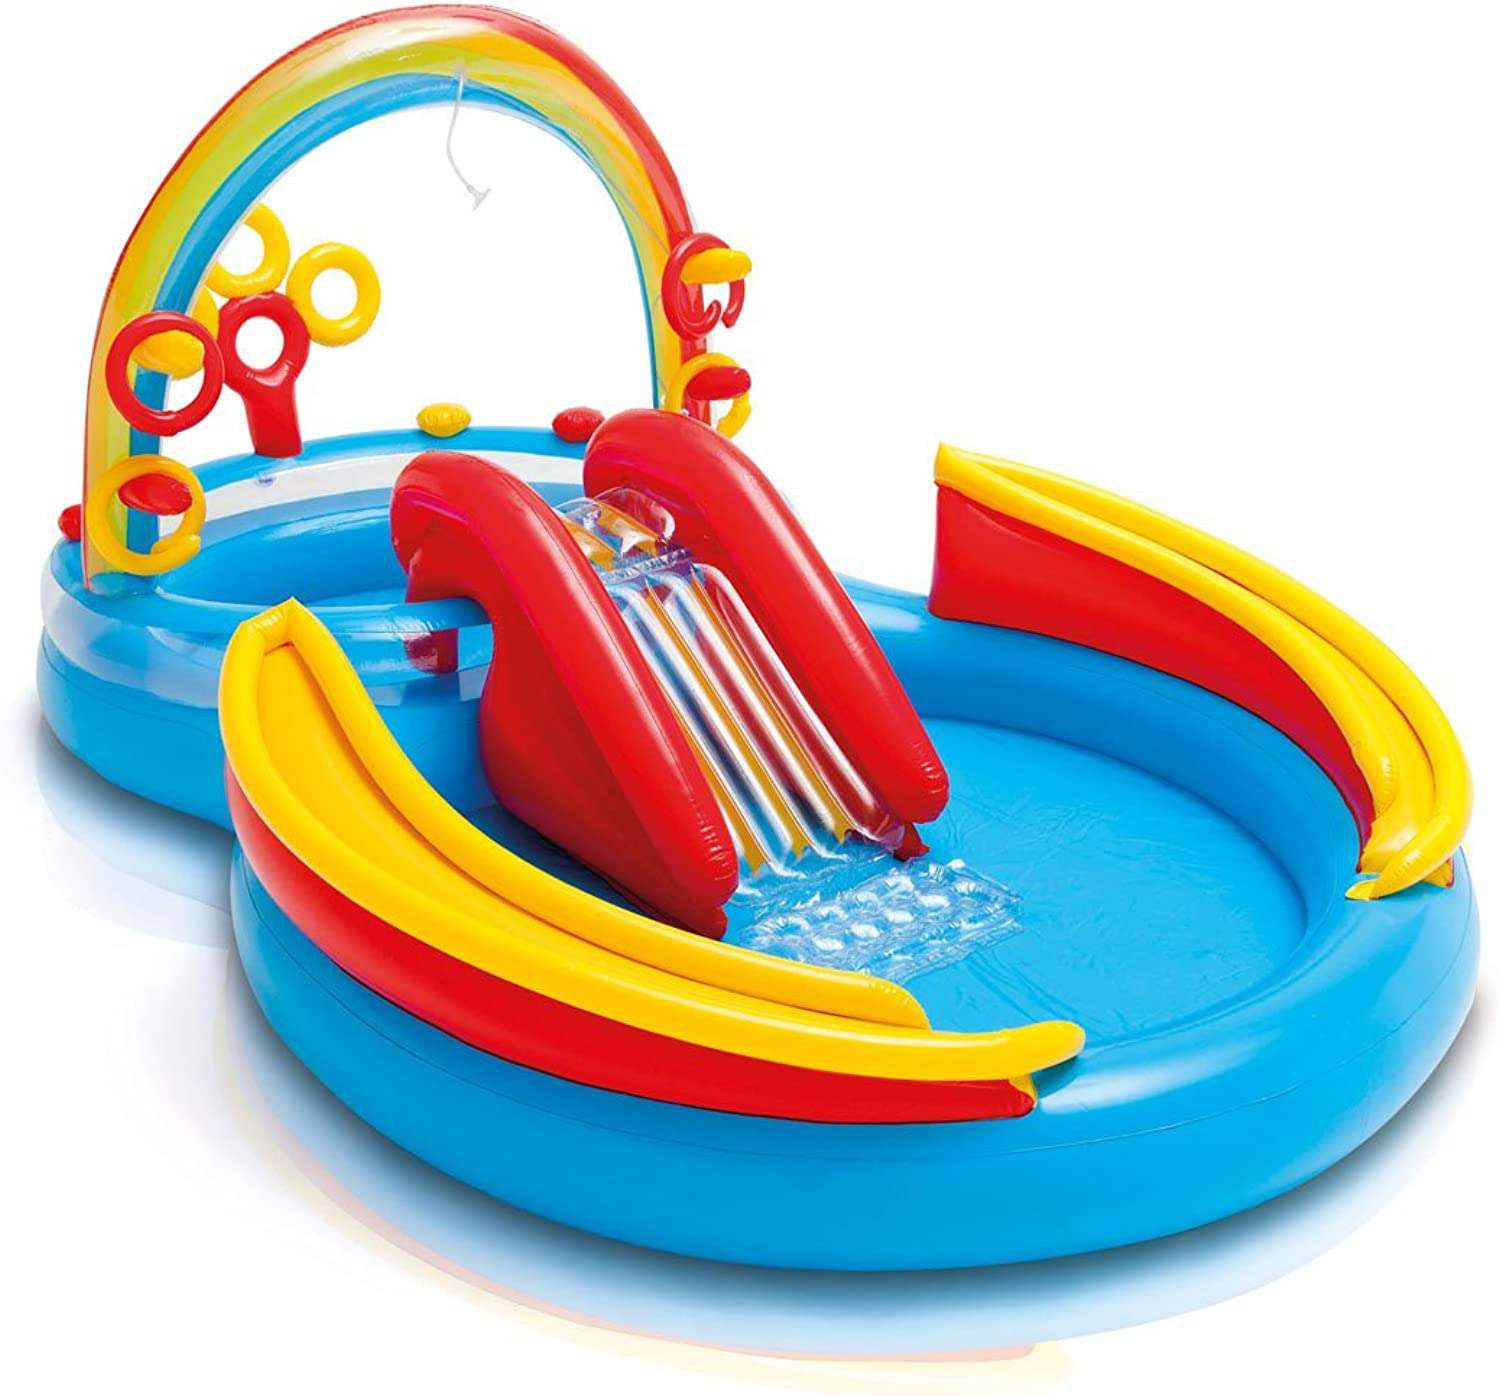 Intex Inflatable Rainbow Ring Water Play Center by Intex